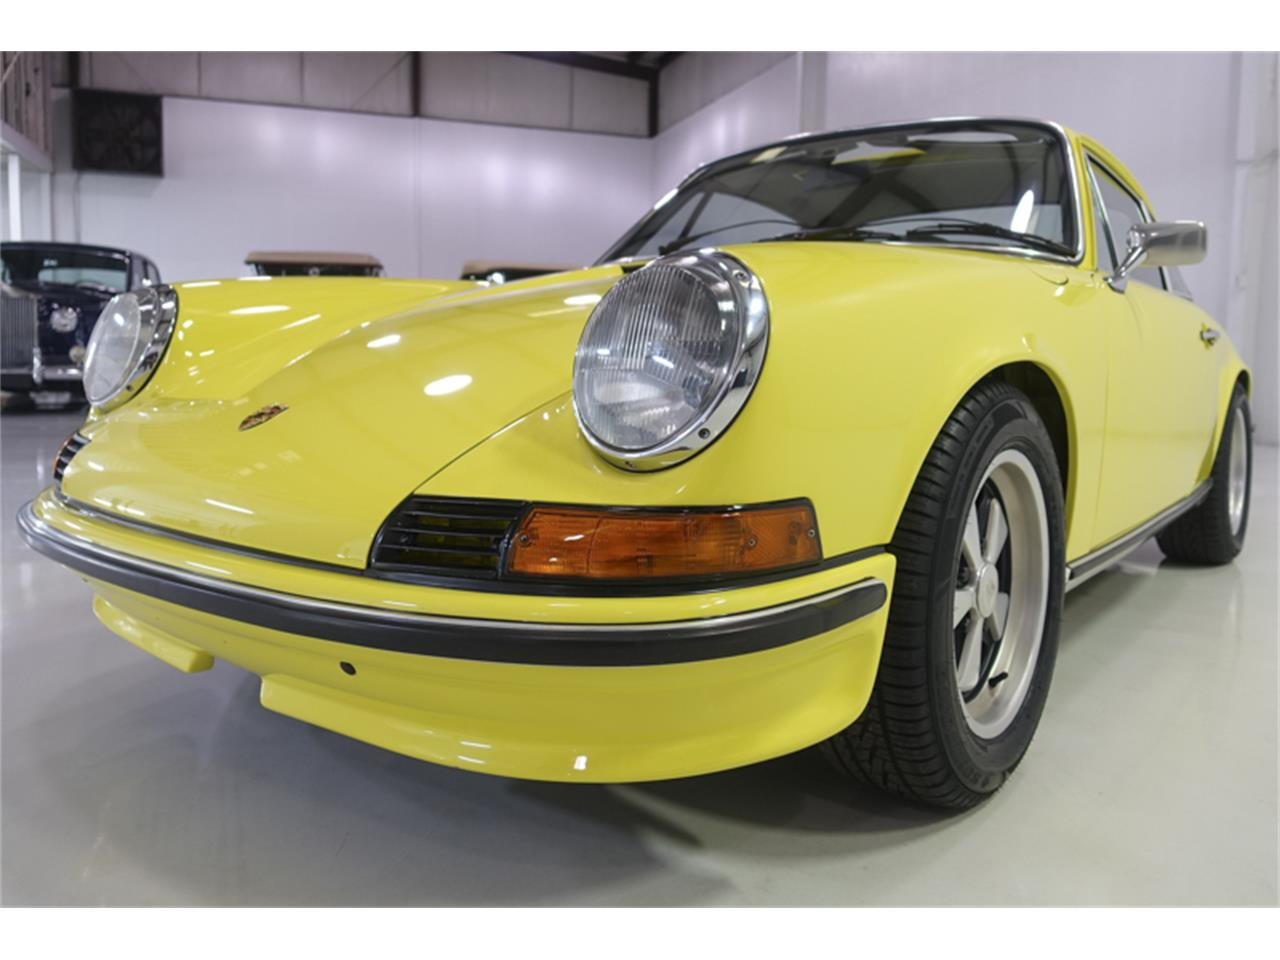 Large Picture of 1973 911S located in St. Louis Missouri Offered by Daniel Schmitt & Co. - PGTF